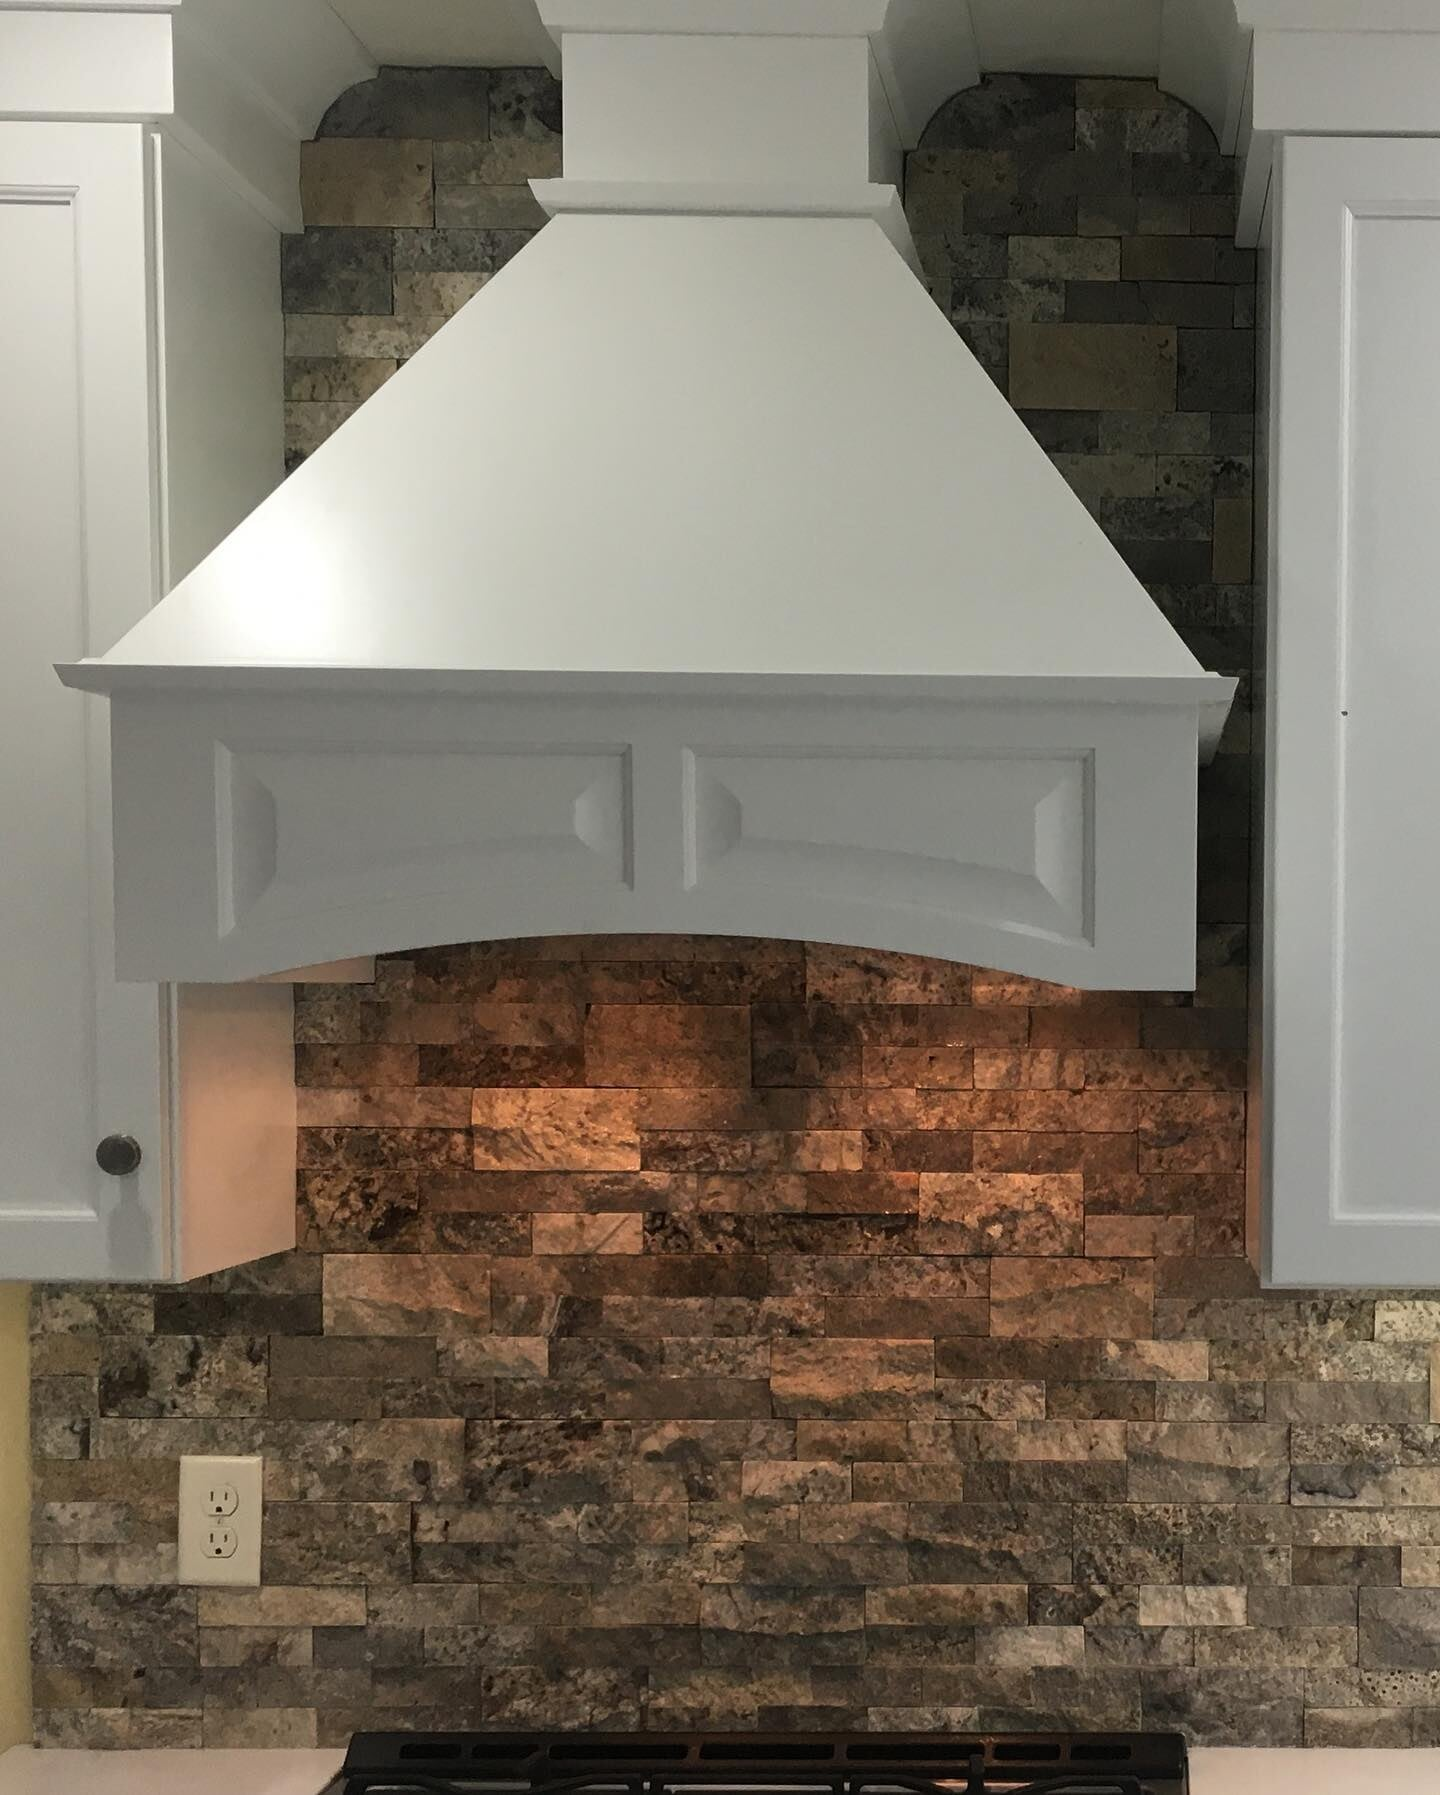 Natural stone backsplash in New Holland, PA from Freedom Flooring